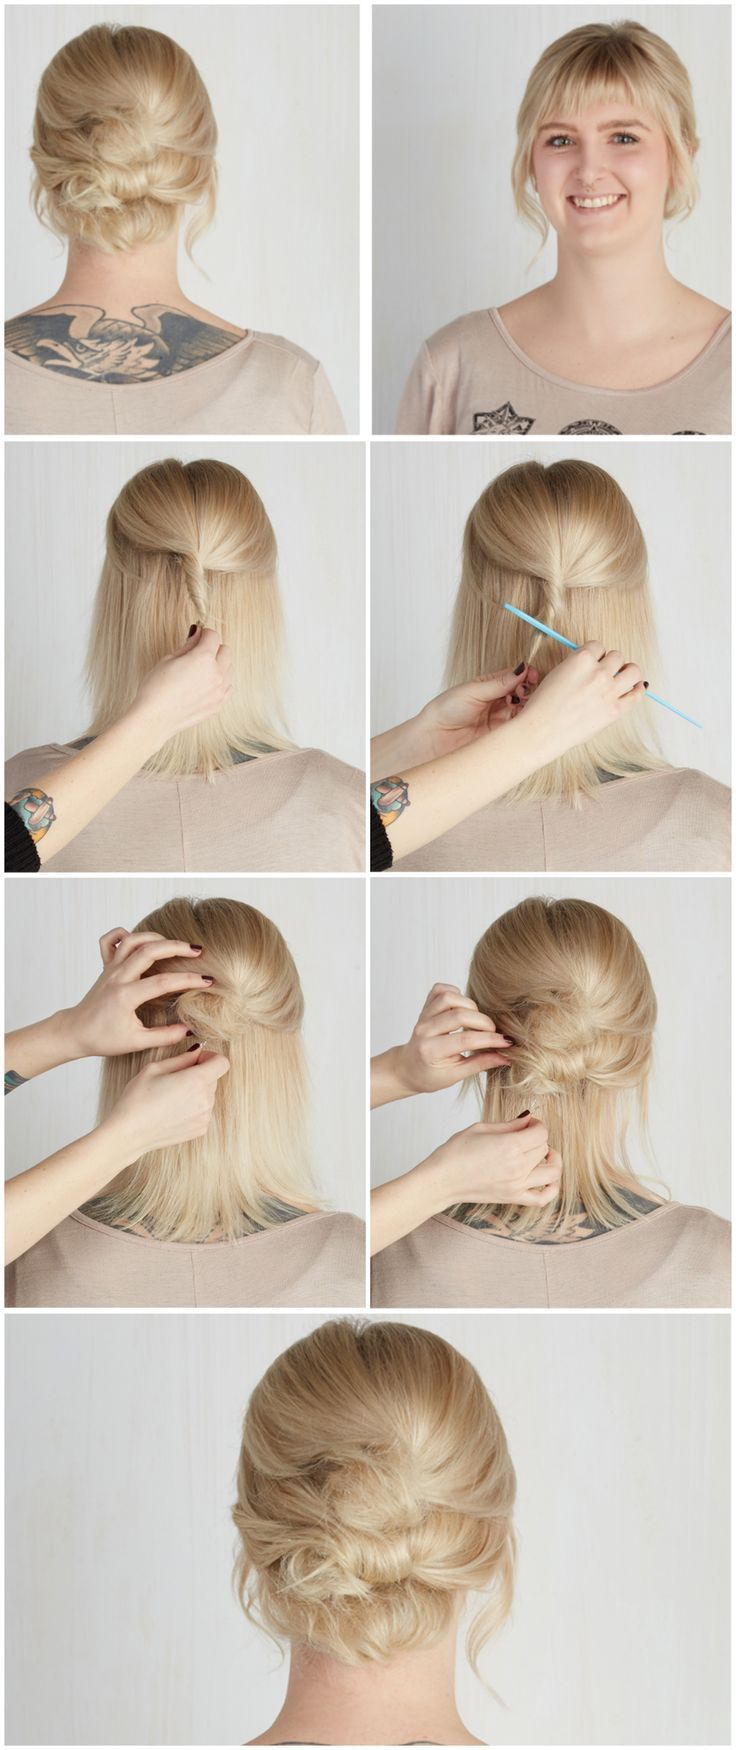 2nd-Day Hair Has Never Looked So Good - | Road trips, Tutorials and ...